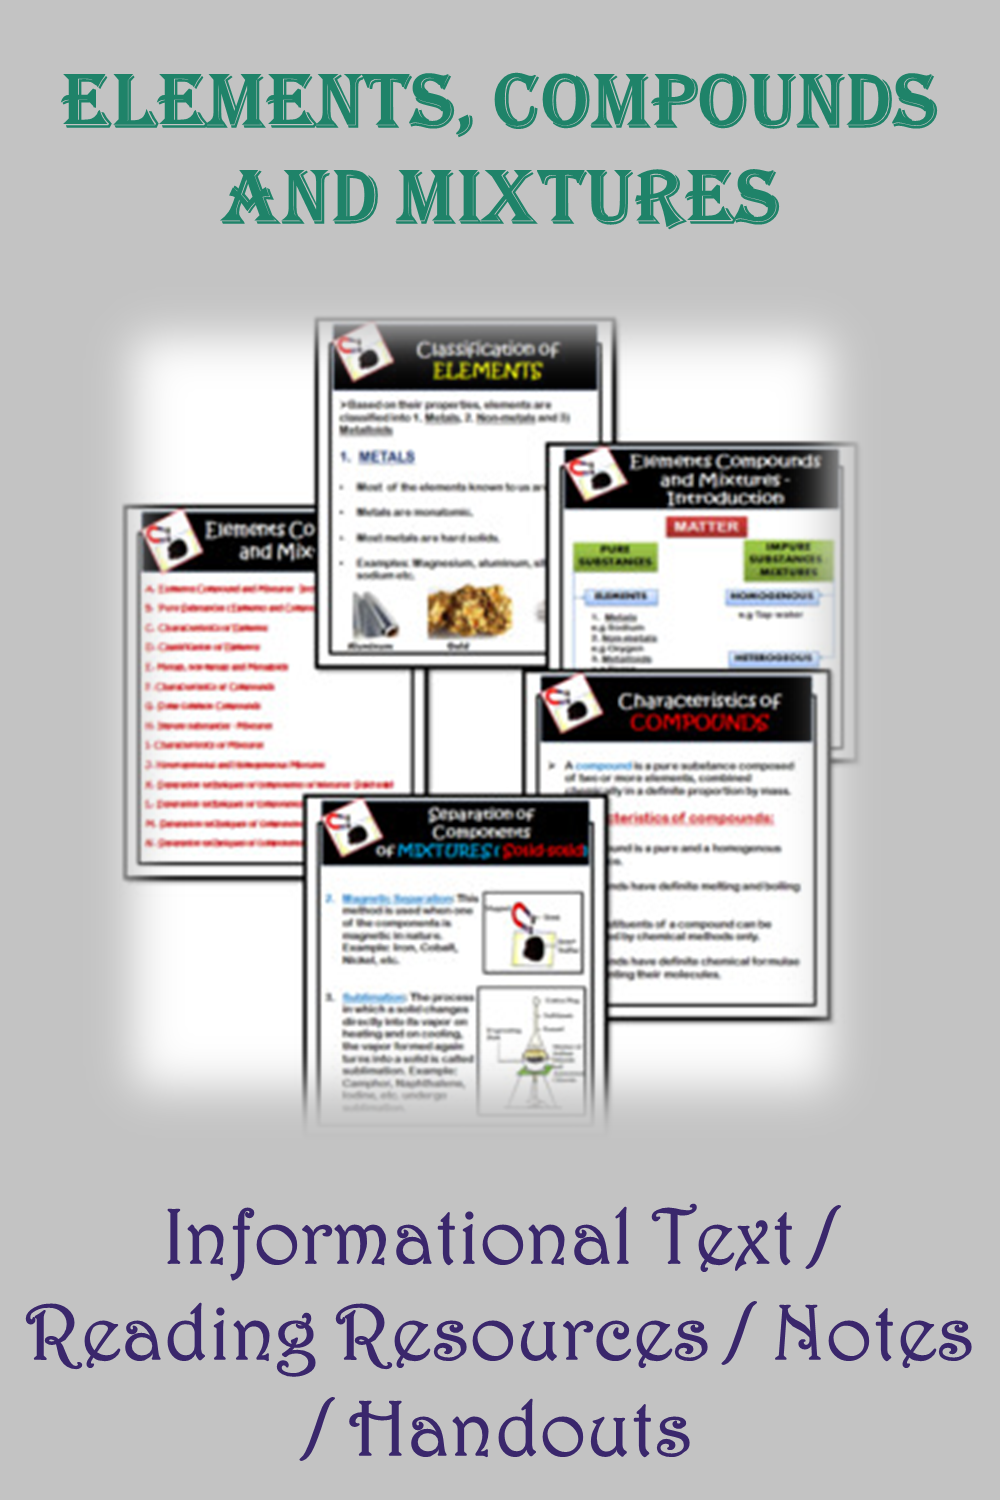 Elements Compounds And Mixtures Informational Text Reading Resources Notes Handouts In 2021 Compounds And Mixtures Reading Resources Informational Text [ 1500 x 1000 Pixel ]